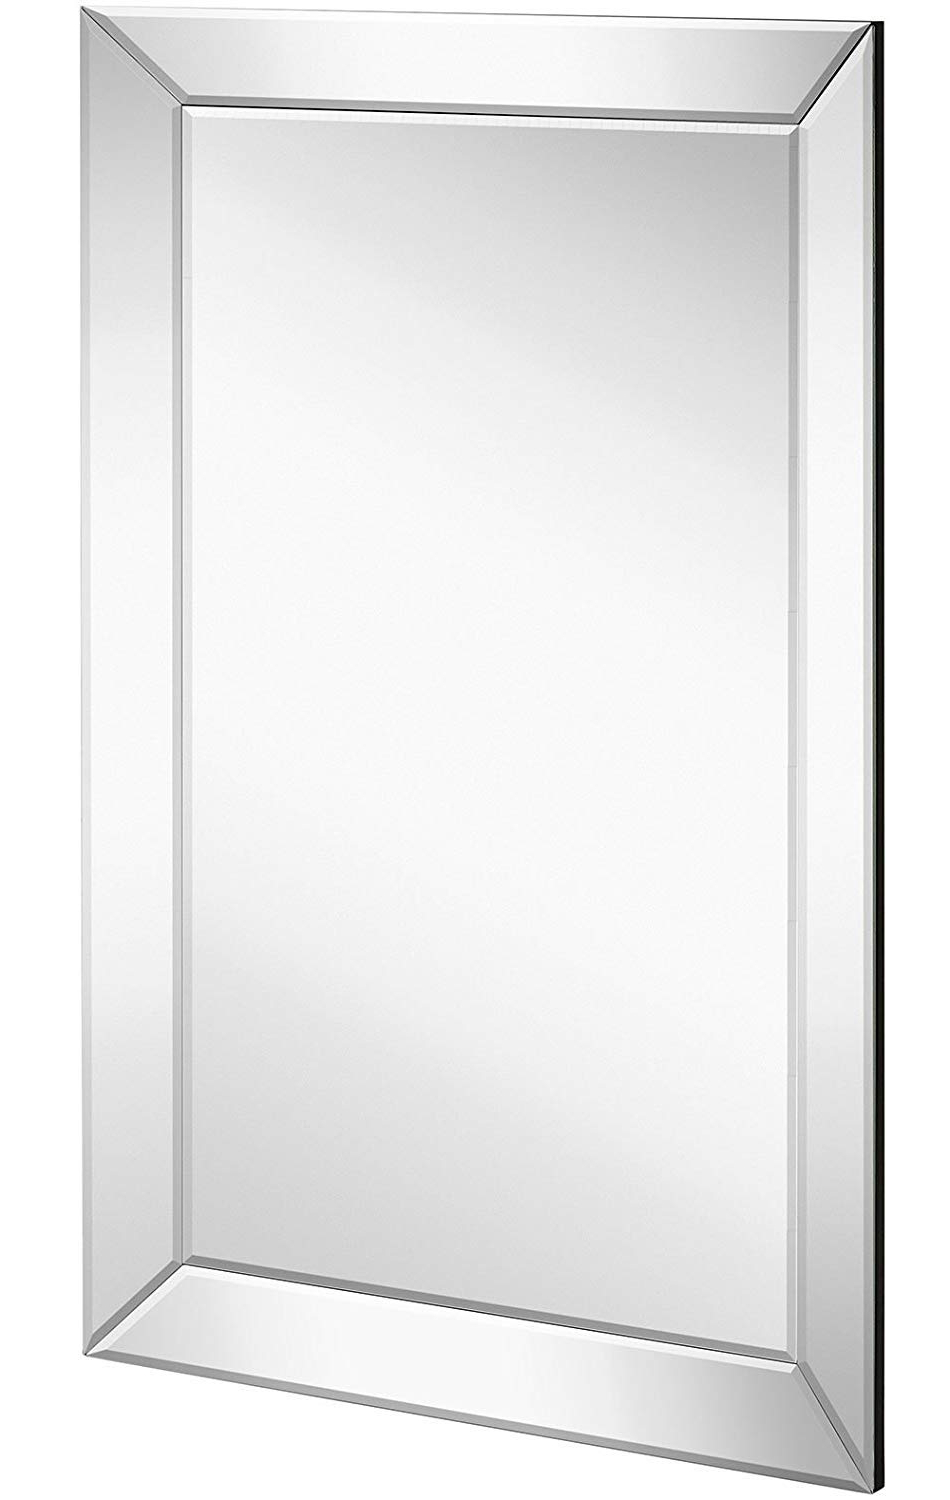 Luxury Mirrored Rectangle With Regard To Best And Newest Angled Wall Mirrors (Gallery 4 of 20)